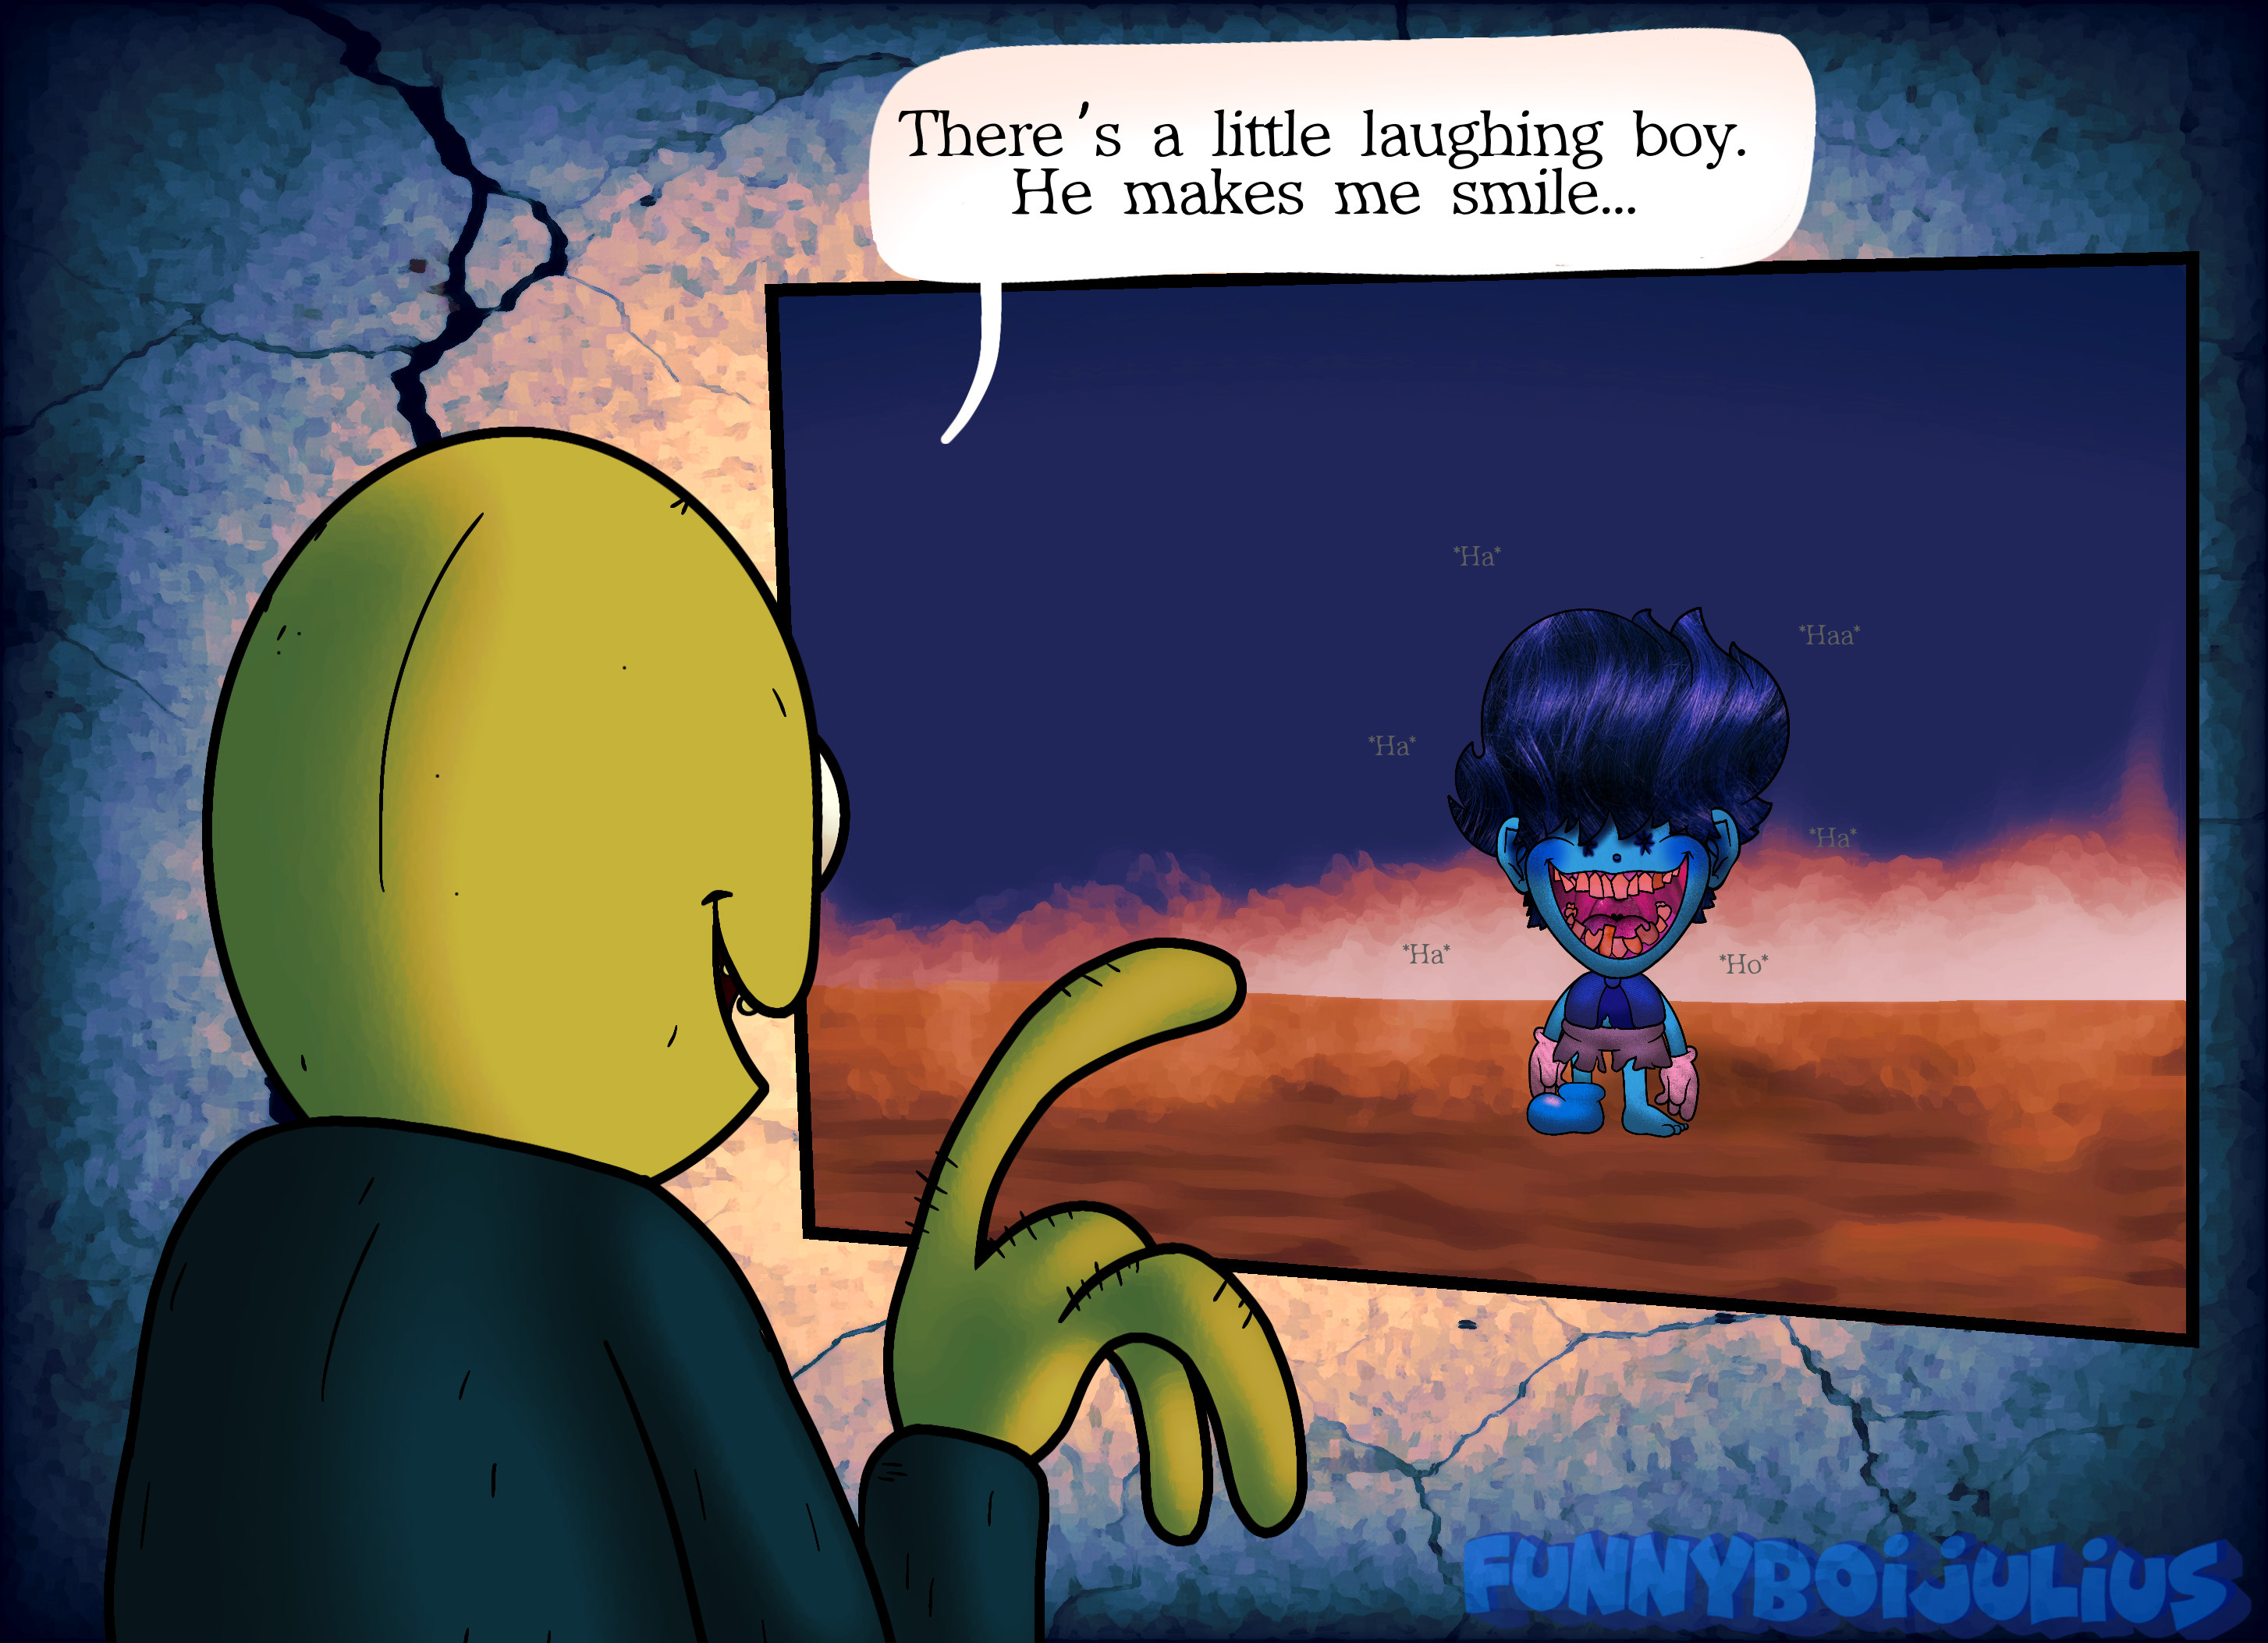 Salad Fingers 12: The Laughing Boy